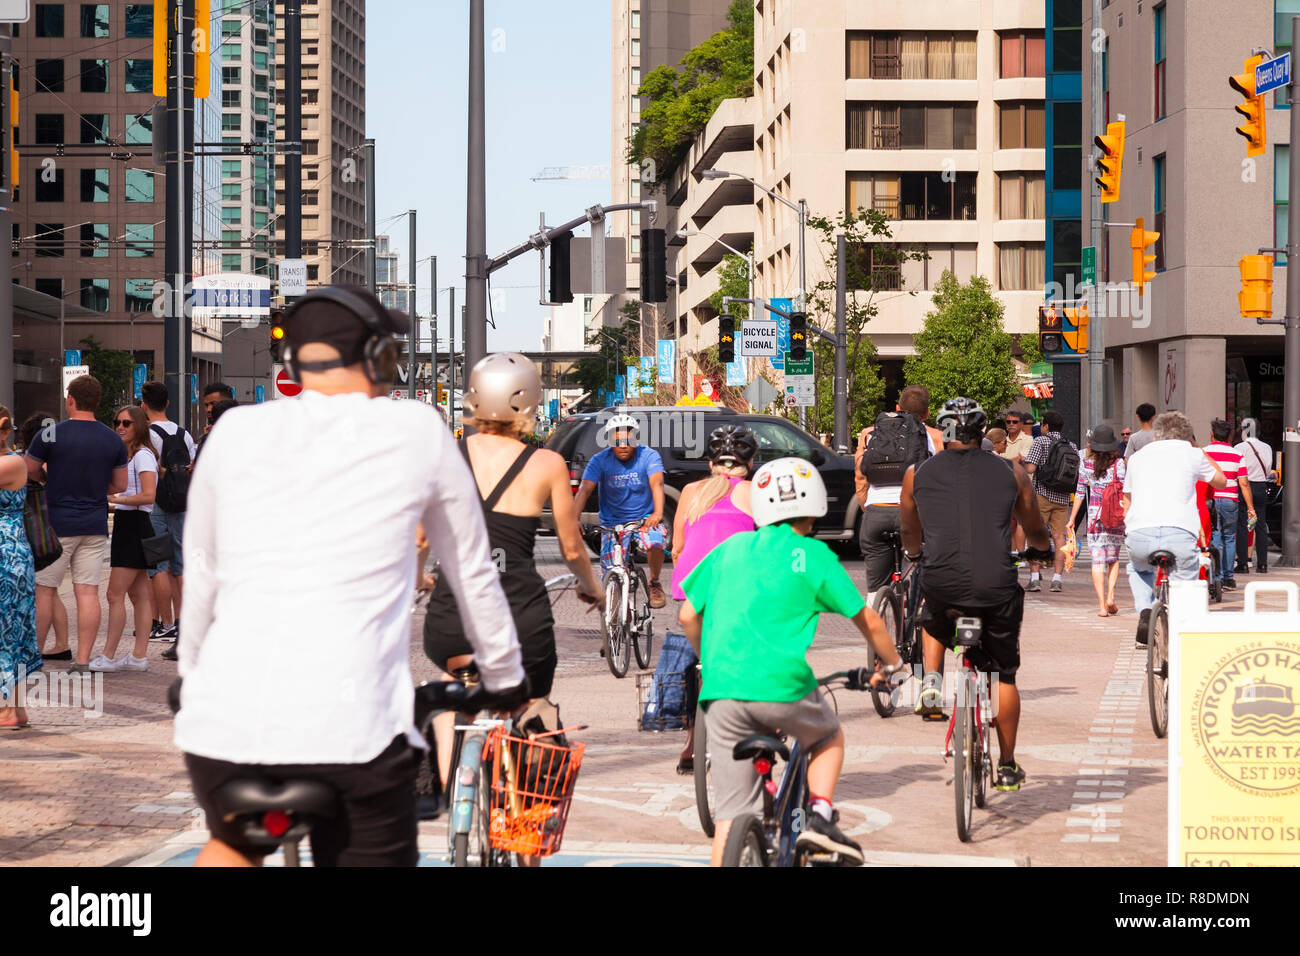 Cyclists using a bike lane on the Martin Goodman Trail that follows Toronto's waterfront on Queens Quay. City of Toronto, Ontario, Canada. - Stock Image